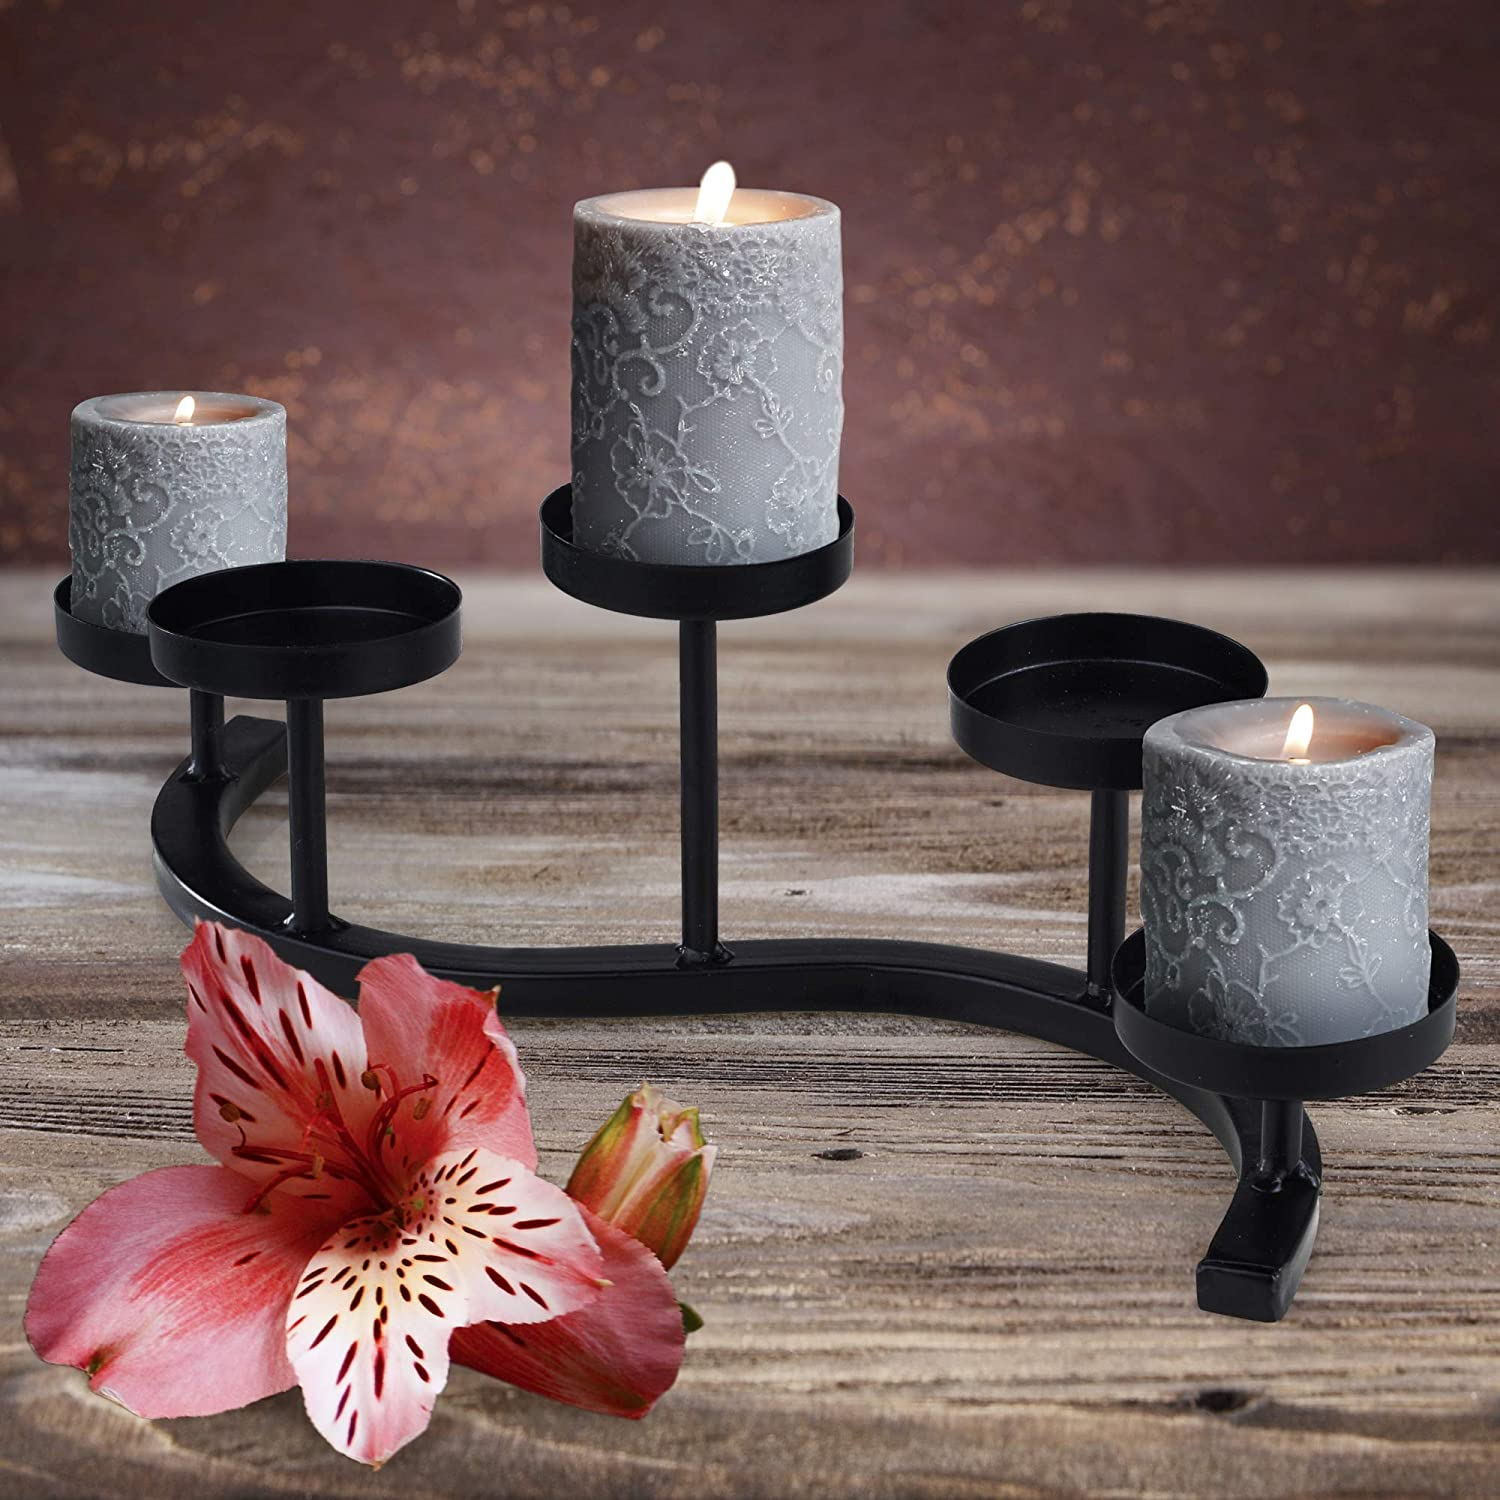 Wrought Iron Candle Holder Black 5 In stock Hand-Forged Wave Candelabra Inexpensive